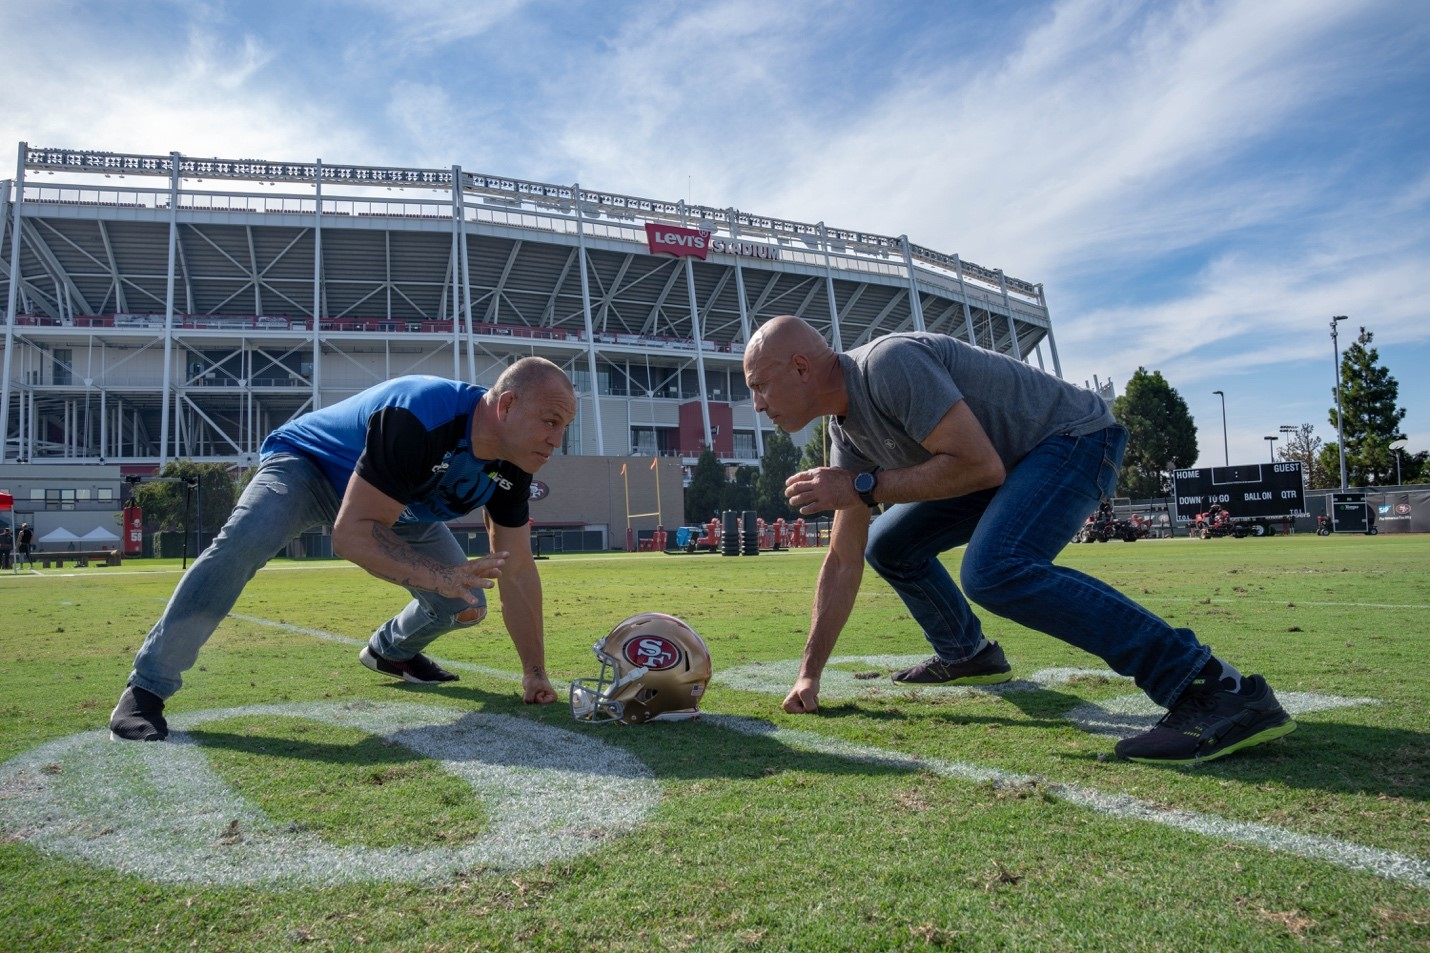 A legendary square-off between Wanderlei Silva and Royce Gracie on the 49ers field.